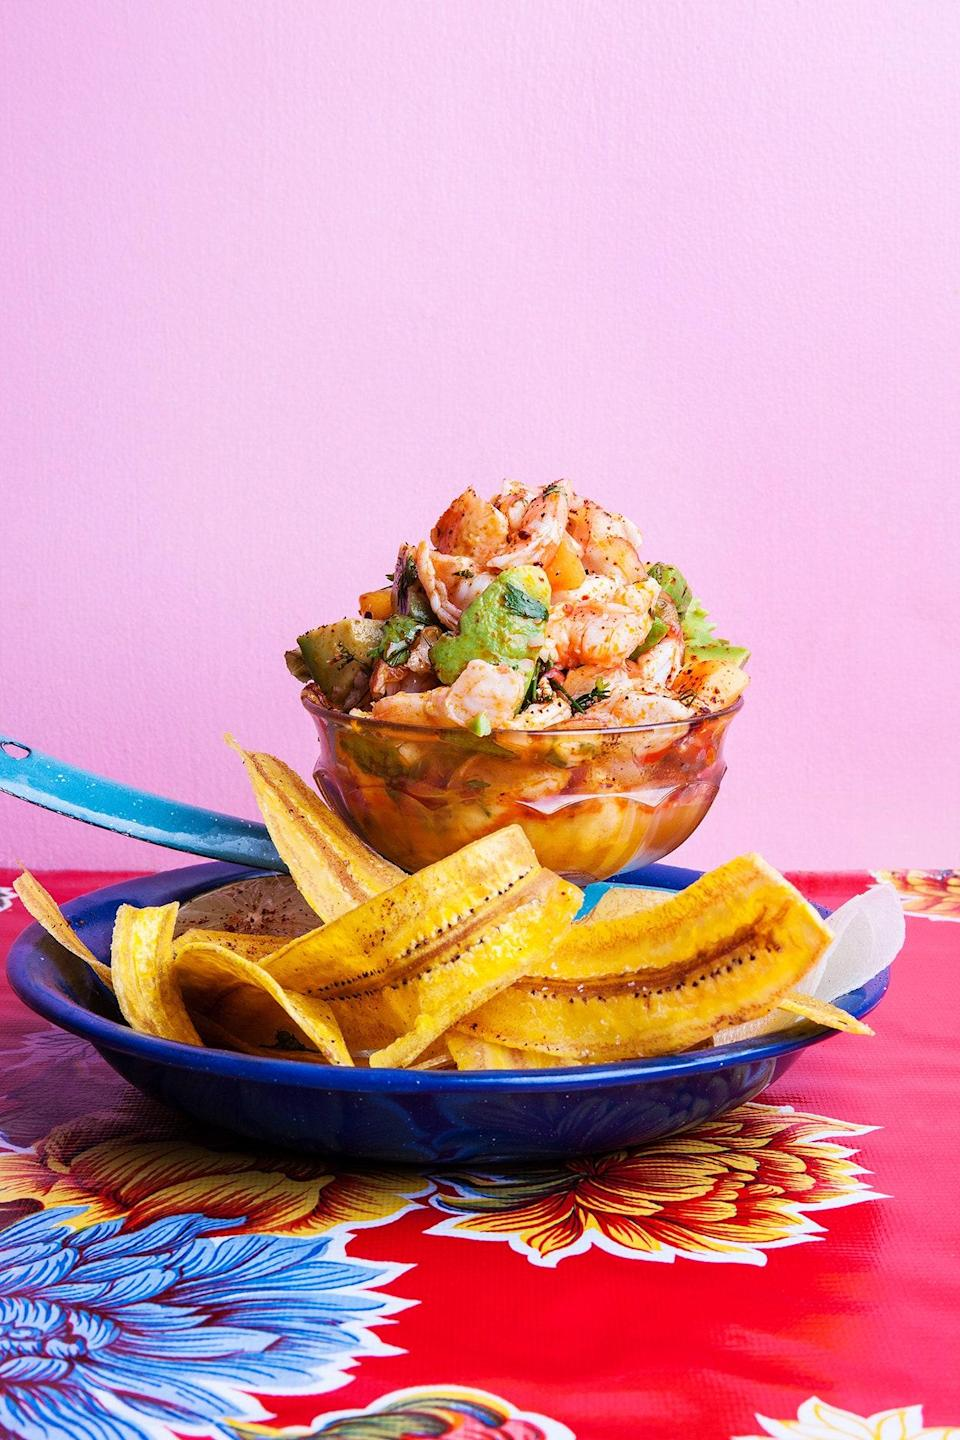 "The ceviche at <a href=""http://www.lildebsoasis.com/"" rel=""nofollow noopener"" target=""_blank"" data-ylk=""slk:Lil' Deb's Oasis"" class=""link rapid-noclick-resp"">Lil' Deb's Oasis</a> in Hudson, NY, changes on a daily basis in an ever-evolving experiment of colors and flavors. The restaurant uses only locally caught fresh fish, so, in order to re-create at home, buy the highest-quality ingredients you can find. <a href=""https://www.bonappetit.com/recipe/red-snapper-shrimp-and-watermelon-ceviche?mbid=synd_yahoo_rss"" rel=""nofollow noopener"" target=""_blank"" data-ylk=""slk:See recipe."" class=""link rapid-noclick-resp"">See recipe.</a>"